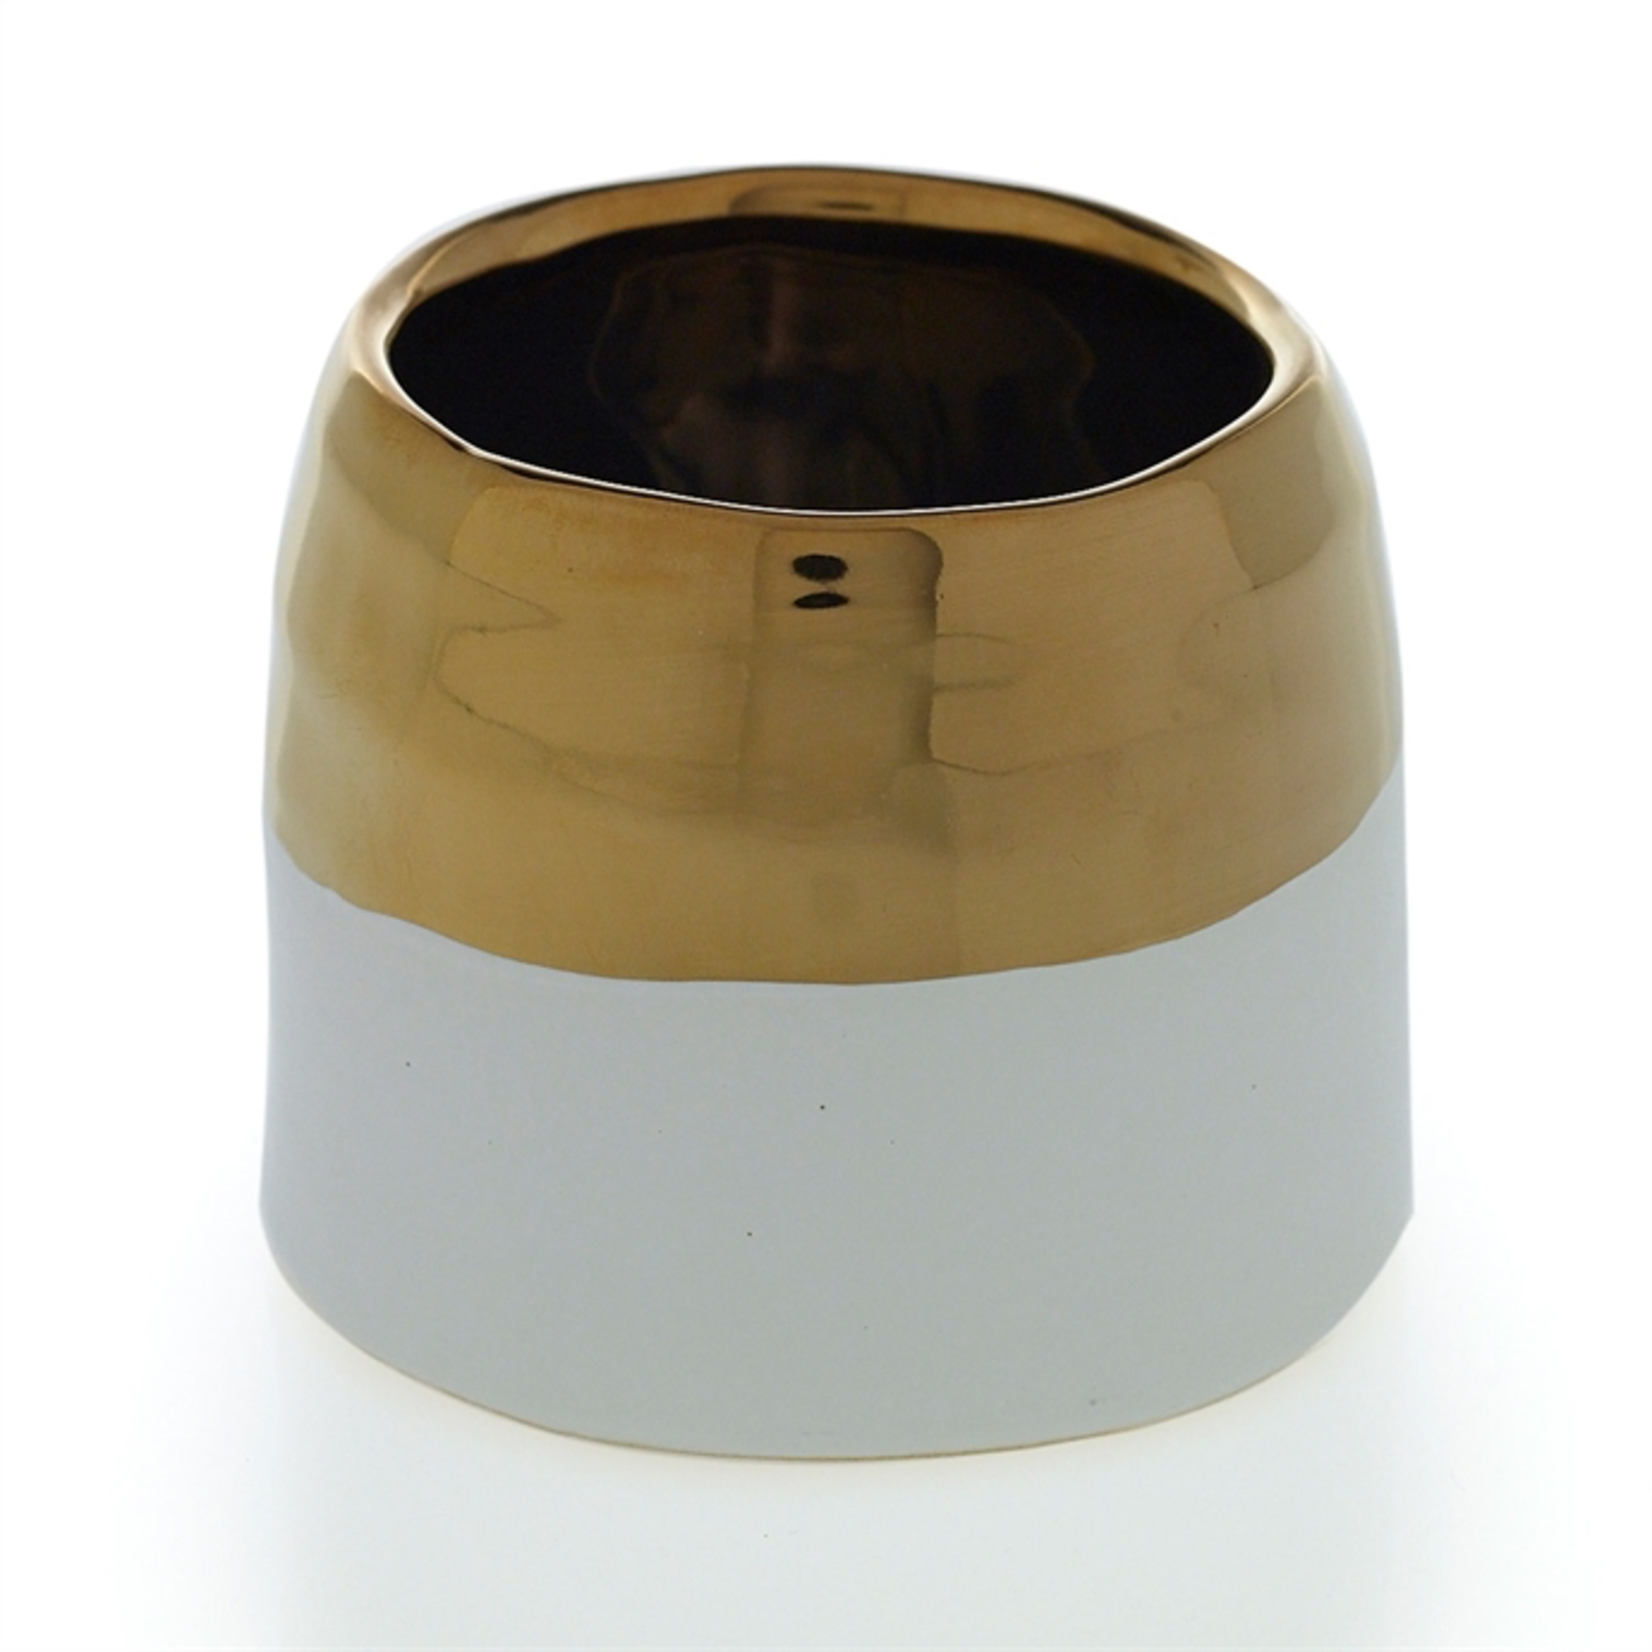 3.5'' x 3'' WHITE AND GOLD CLAIRE POT (AD)